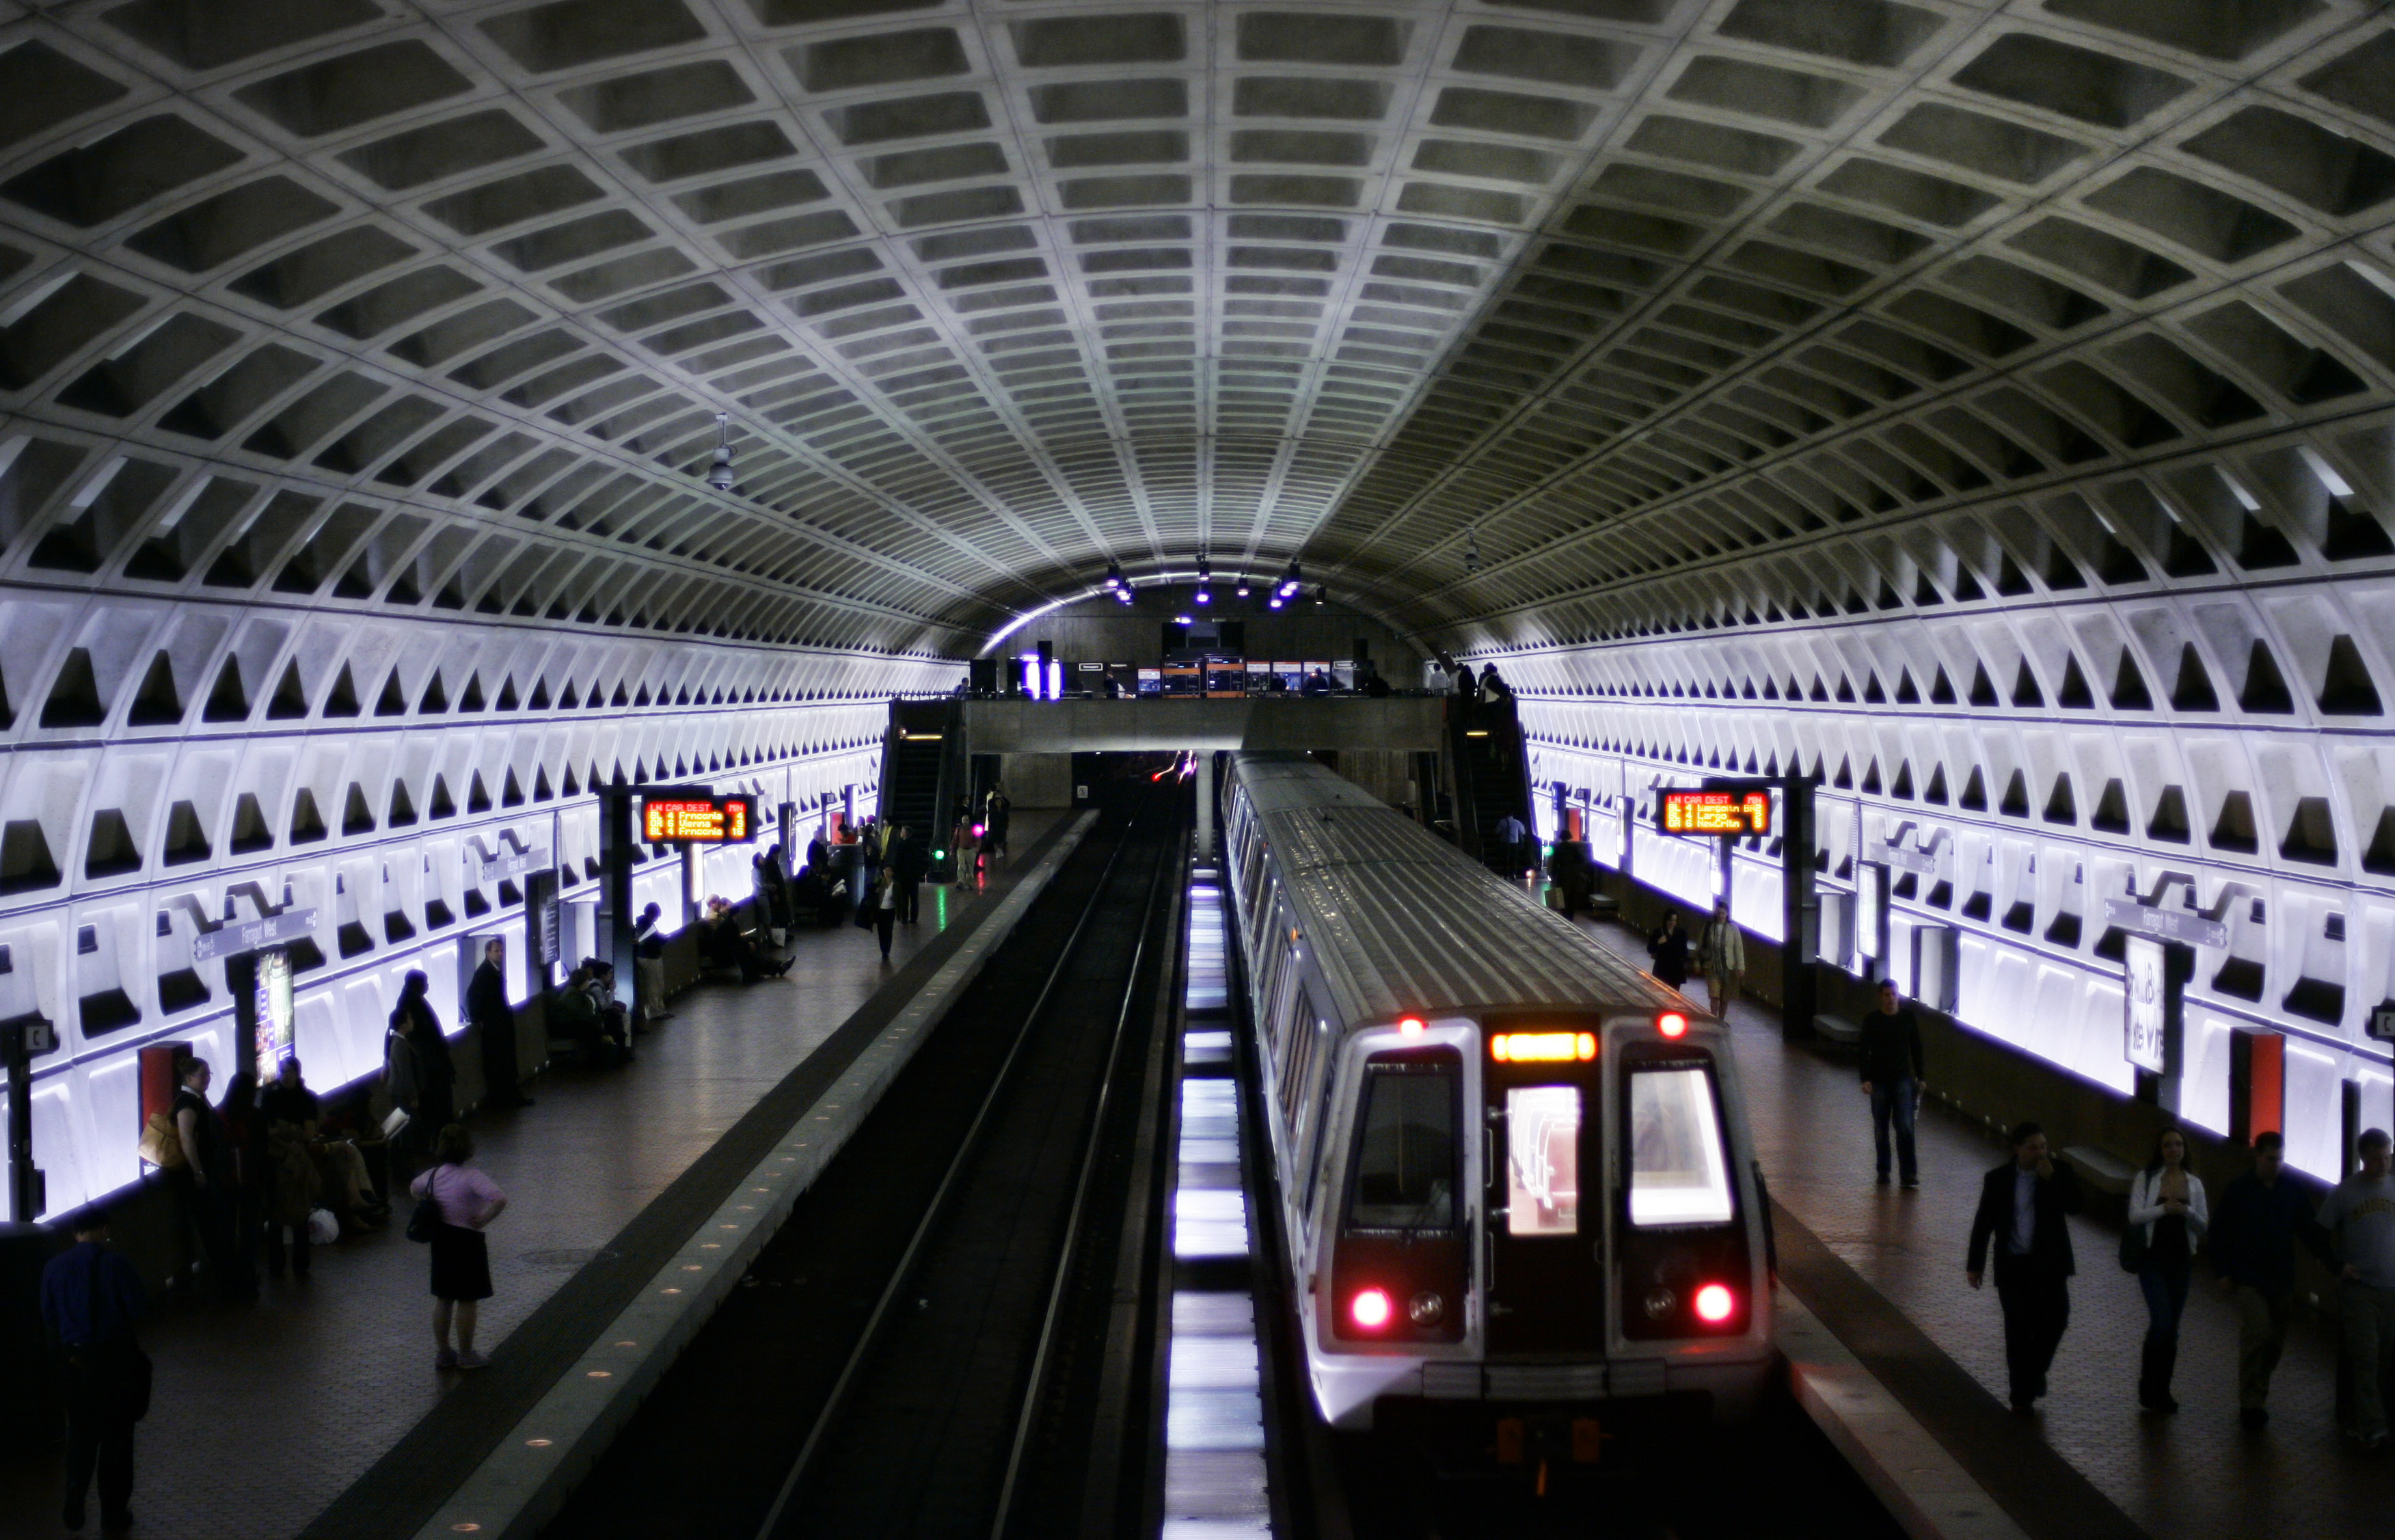 10 things to know about Metro track work: June 18 to July 3